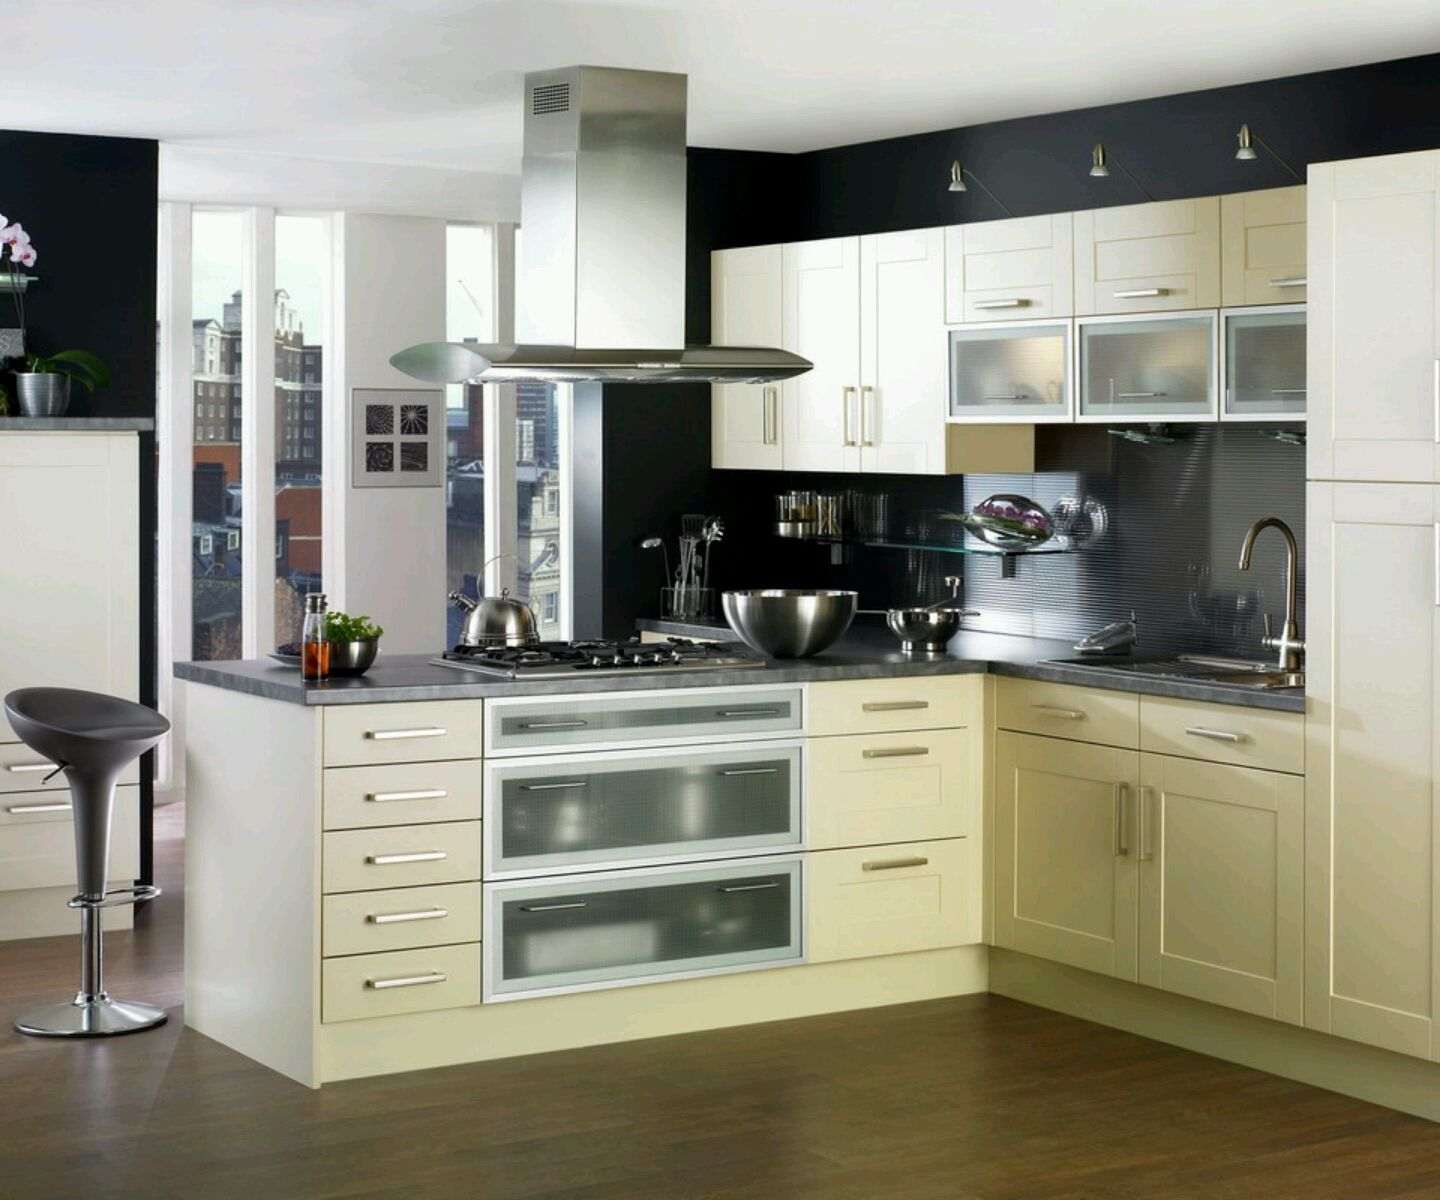 Home Designs Latest Kitchen Cabinets Designs Modern Homes Unique - New homes kitchen designs